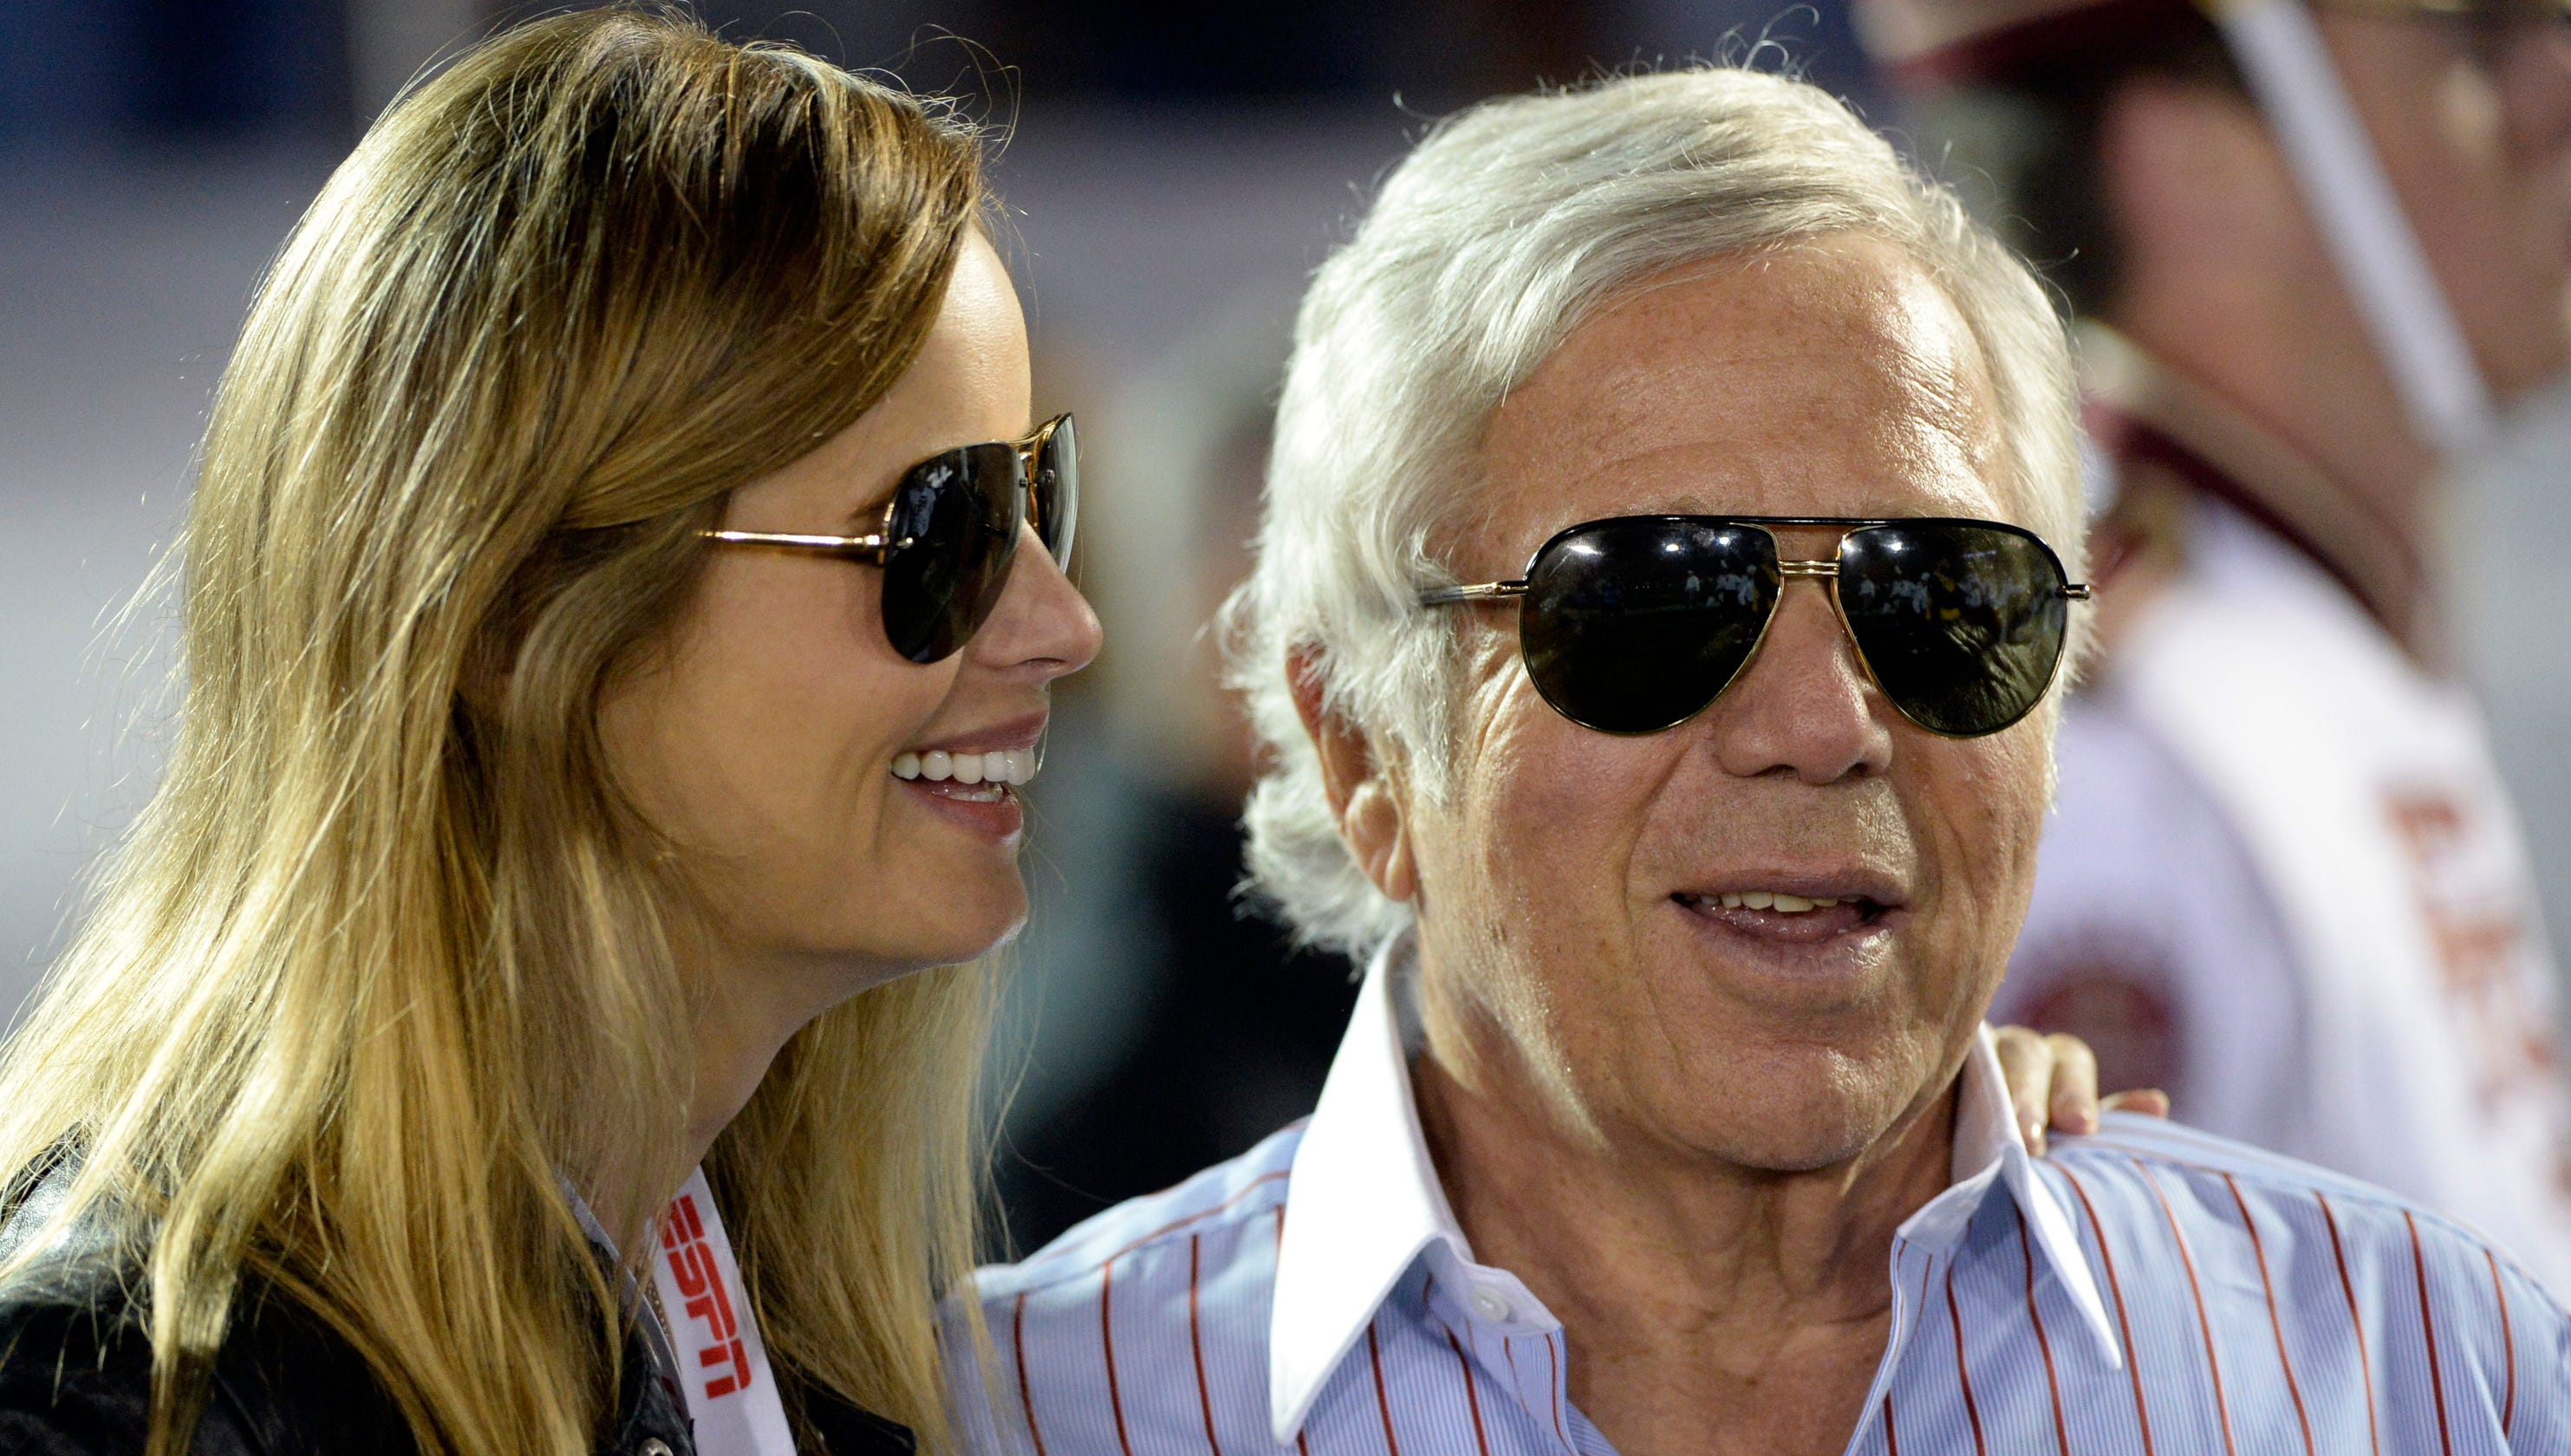 Robert Kraft: What we know about the sex solicitation